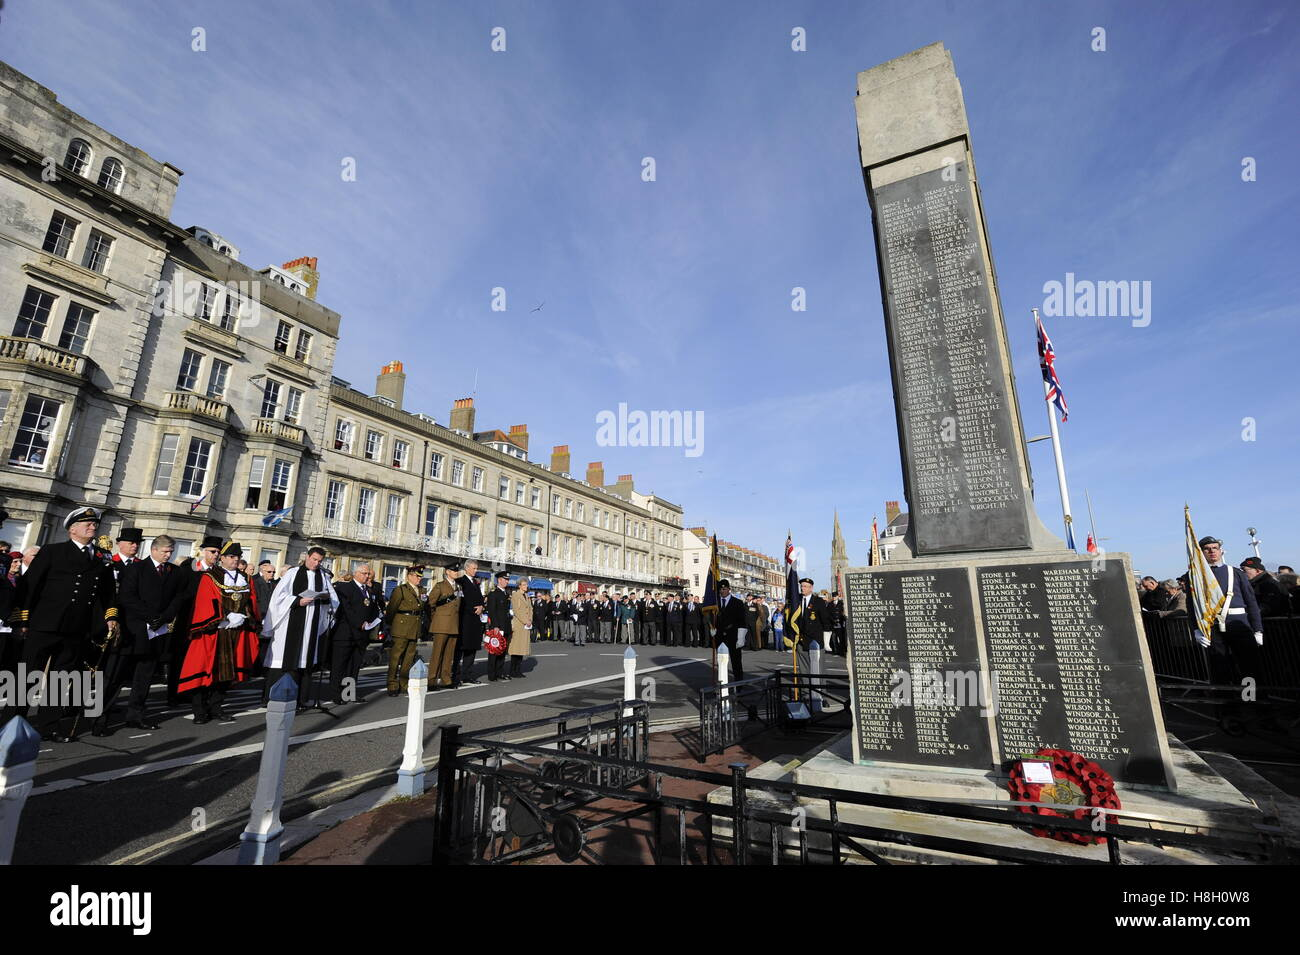 Weymouth, Dorset, UK. 13th November 2016. Remembrance Sunday service and parade at the Weymouth War Memorial on - Stock Image